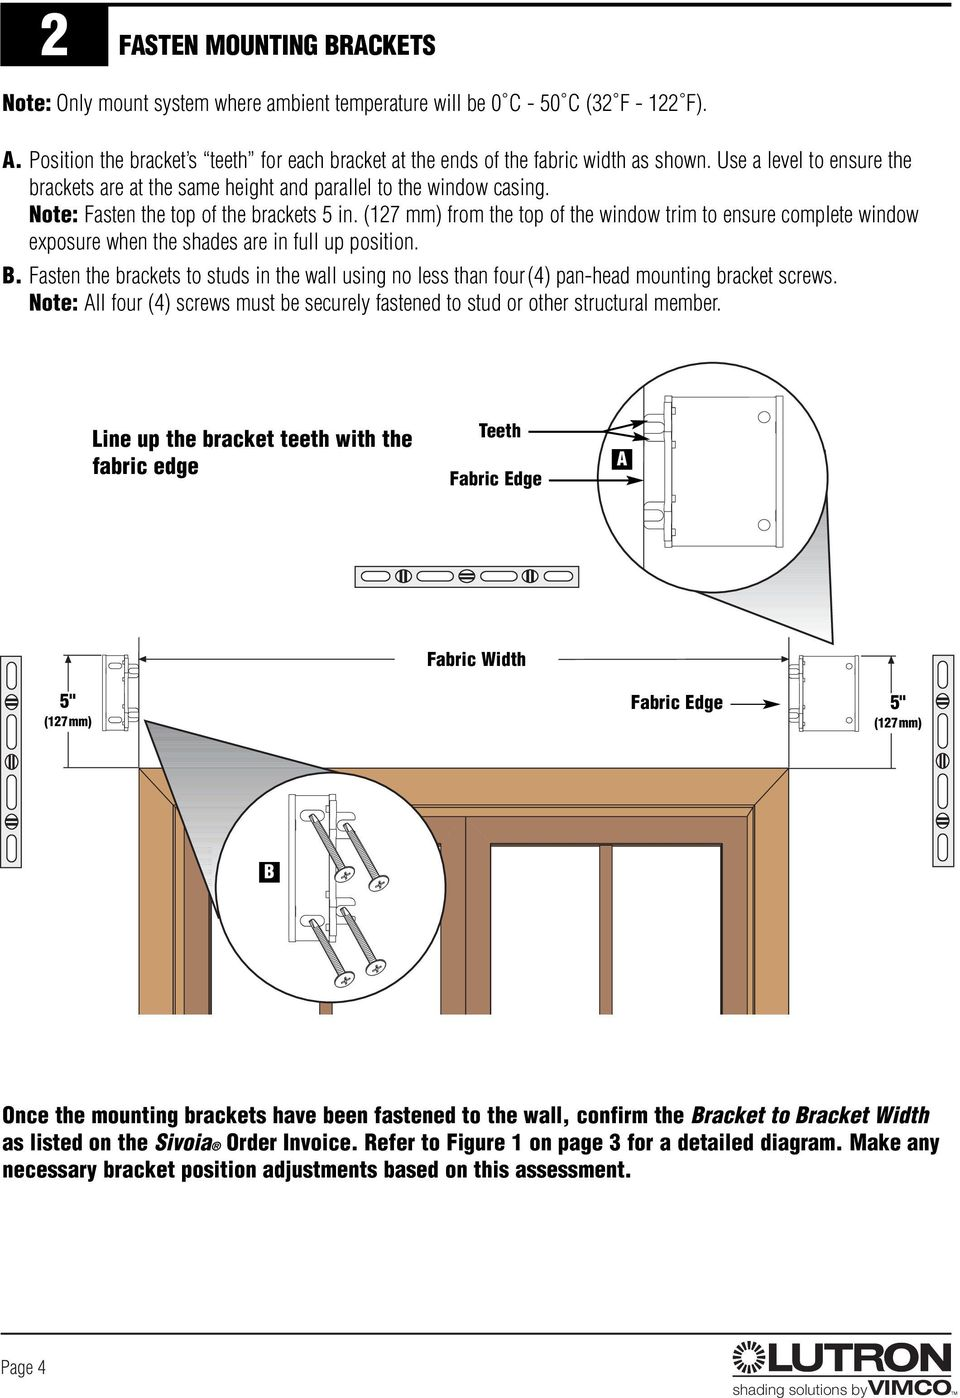 Note: Fasten the top of the brackets 5 in. (127 mm) from the top of the window trim to ensure complete window exposure when the shades are in full up position.